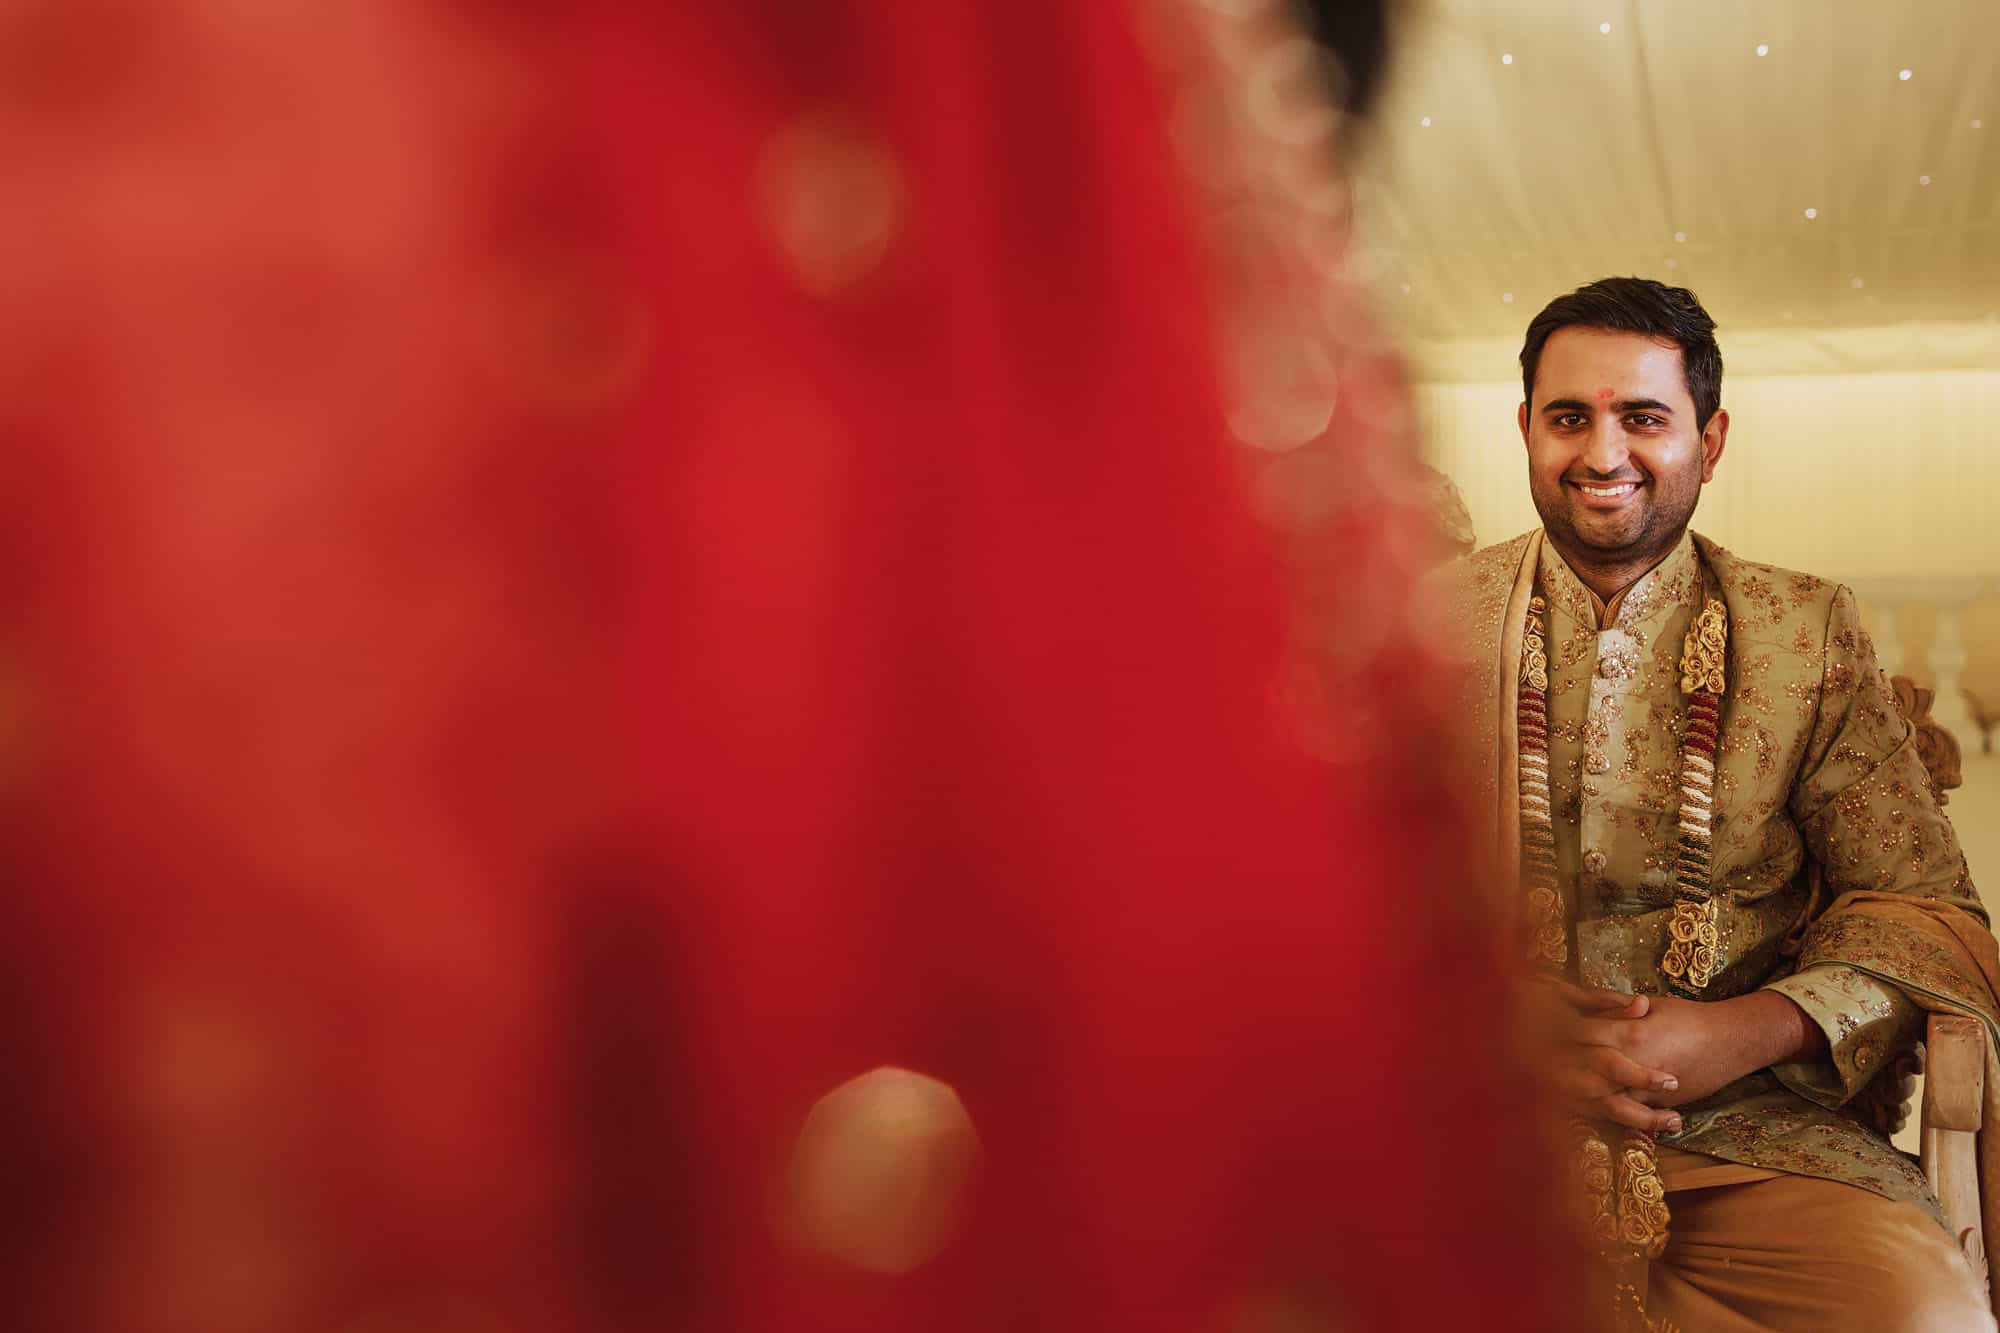 berkshire hindu wedding photographer